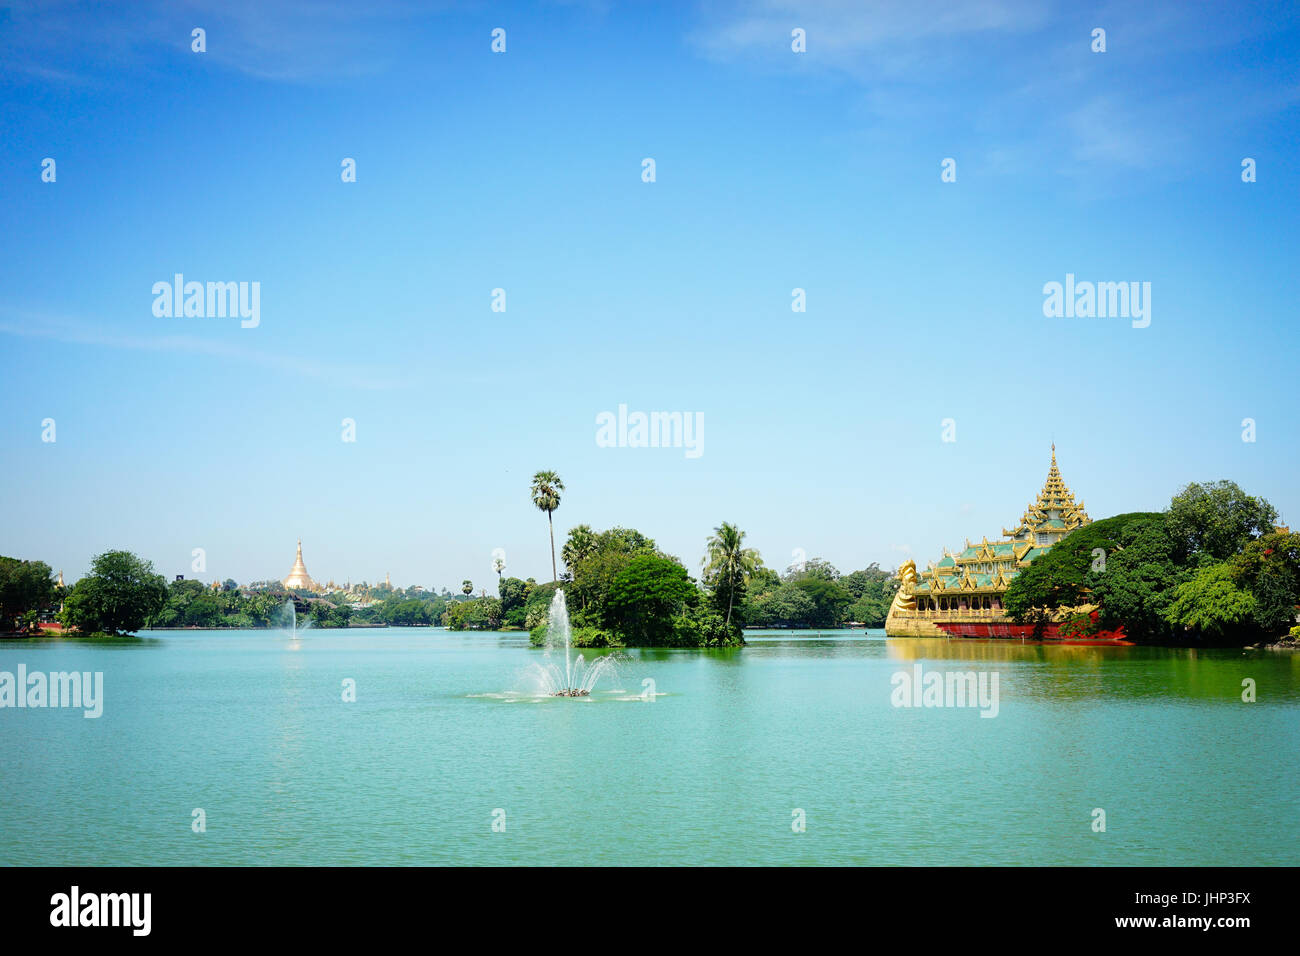 View of Karaweik Hall, a palace on the eastern shore of Kandawgyi Lake, Yangon, Myanmar (Burma). Stock Photo